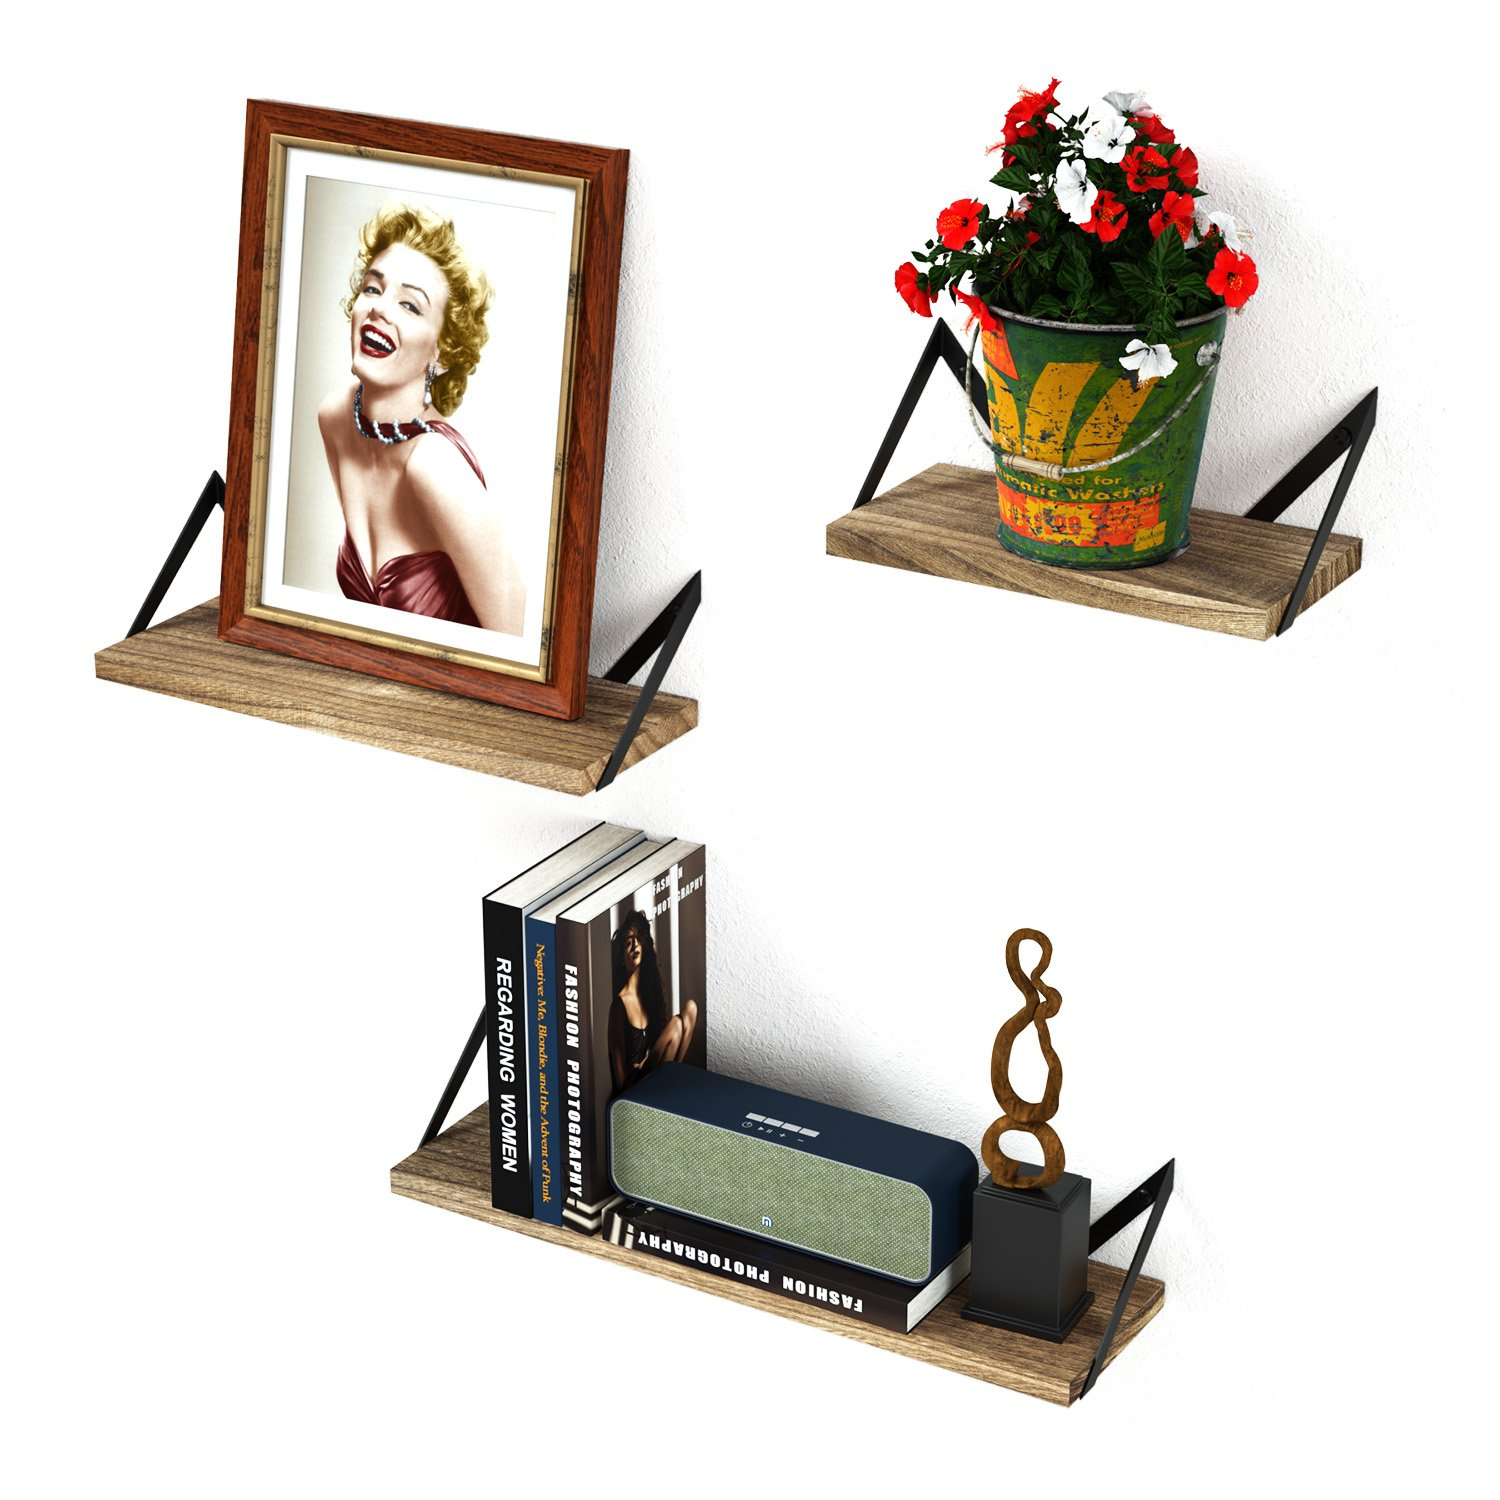 RooLee Rustic Floating Wall Mount Shelves Set of 3 Wood Storage Shelves Perfect Decor Any Room (Torched Finish)